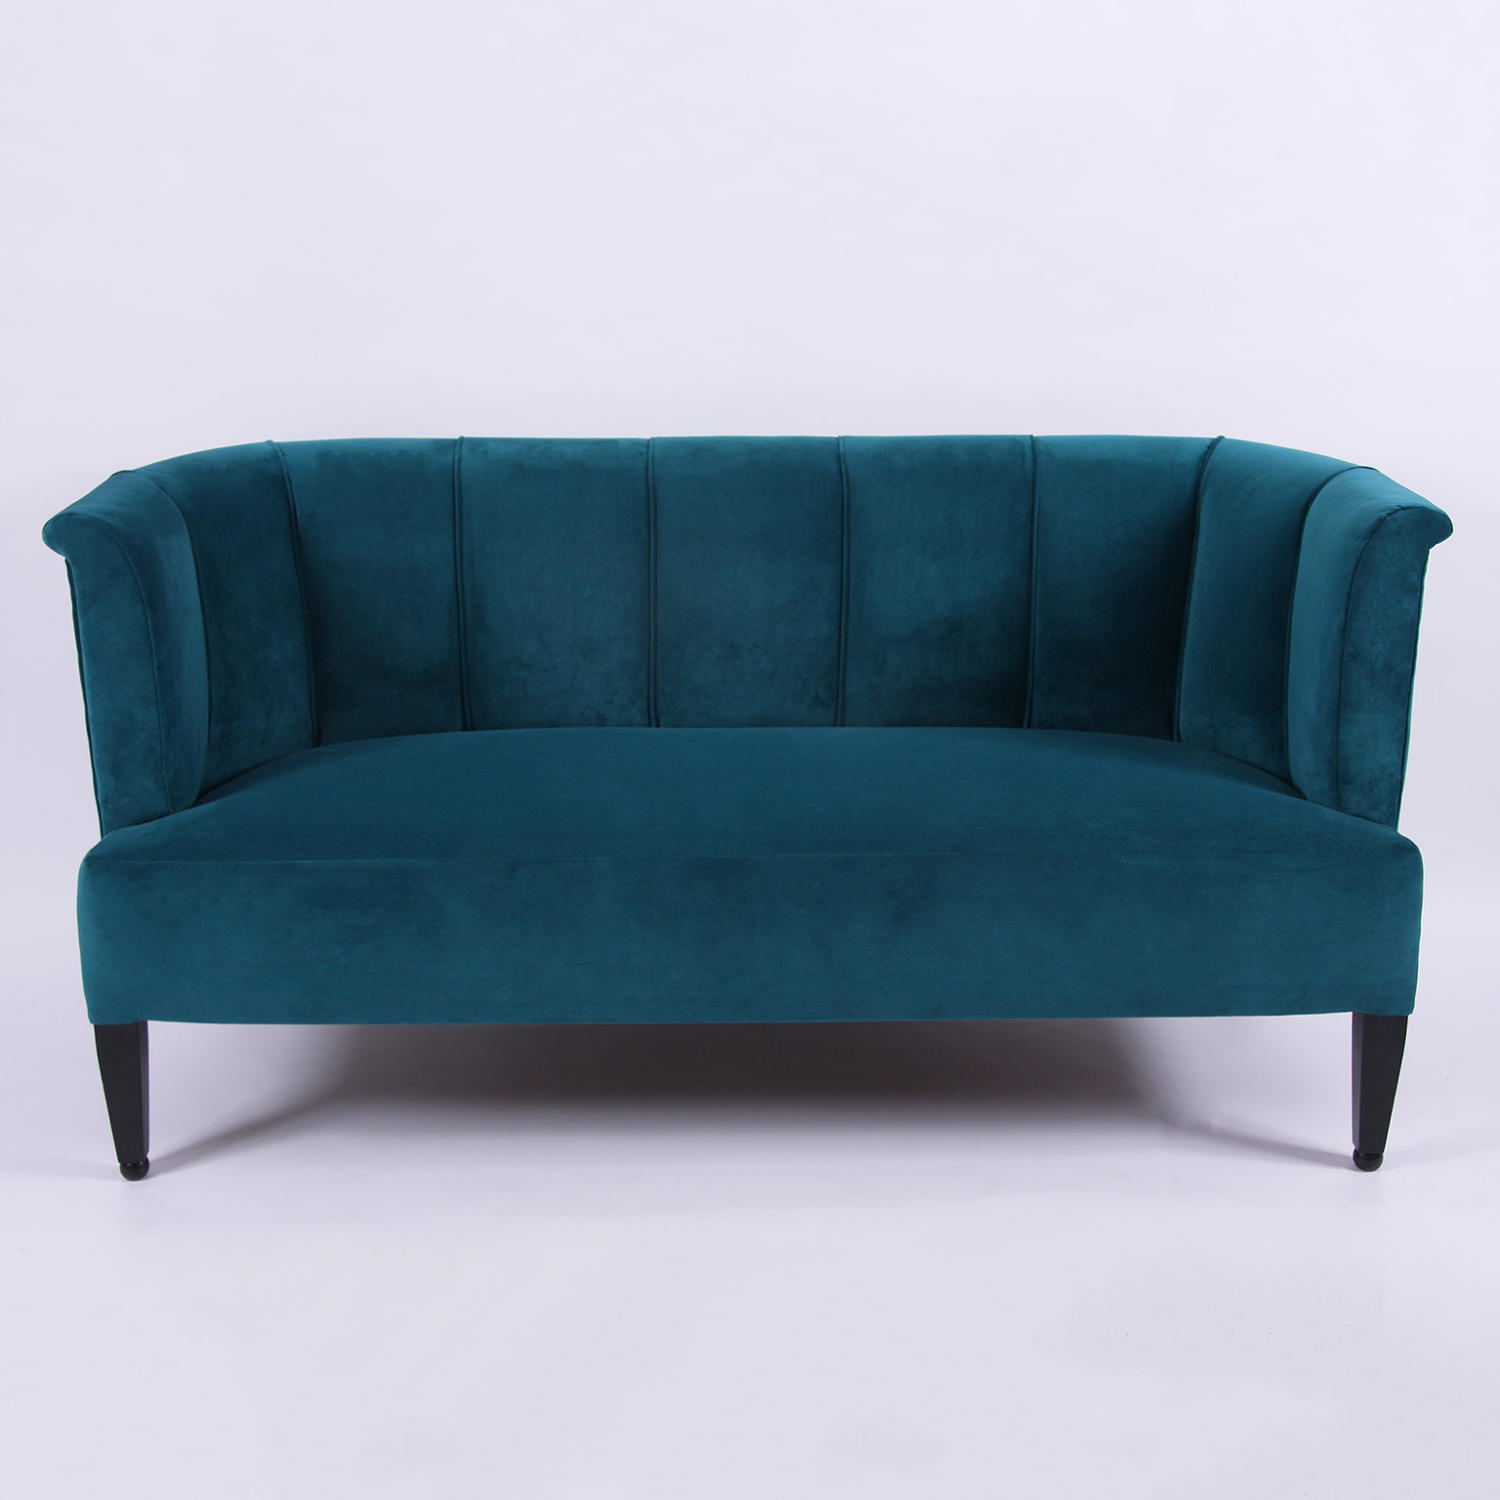 Alleegasse Sofa By Josef Hoffmann Picture 1